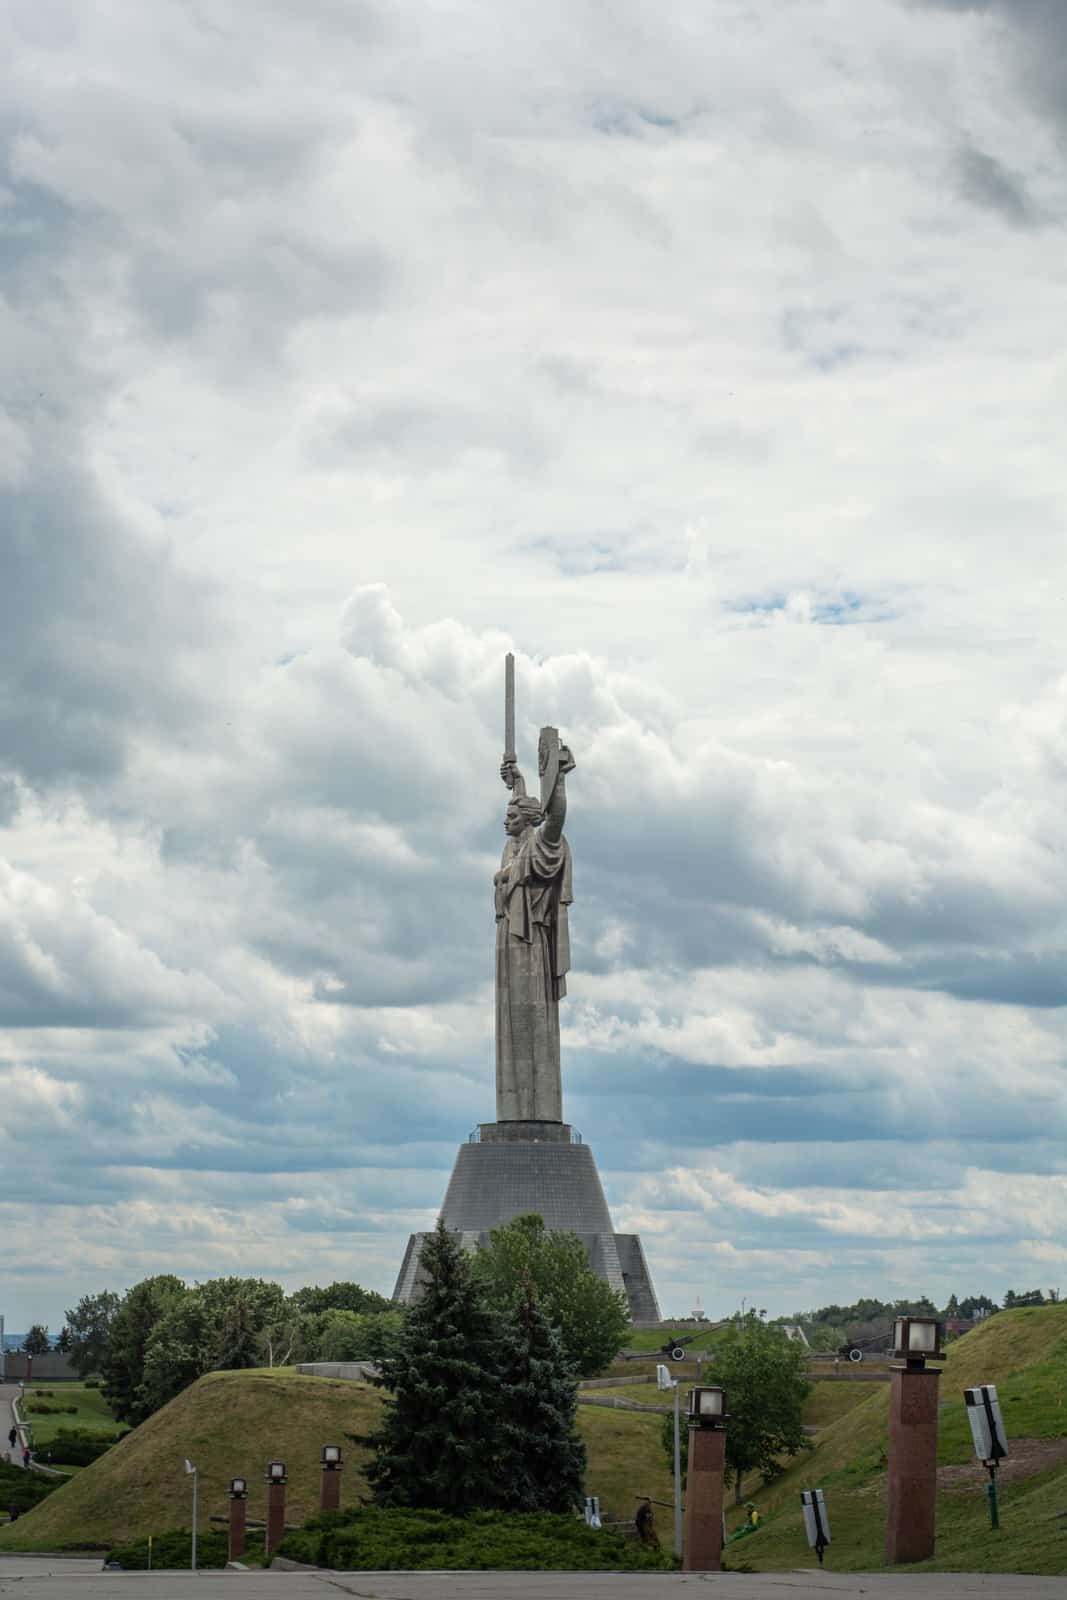 The Motherland monument in Kyiv, Ukraine